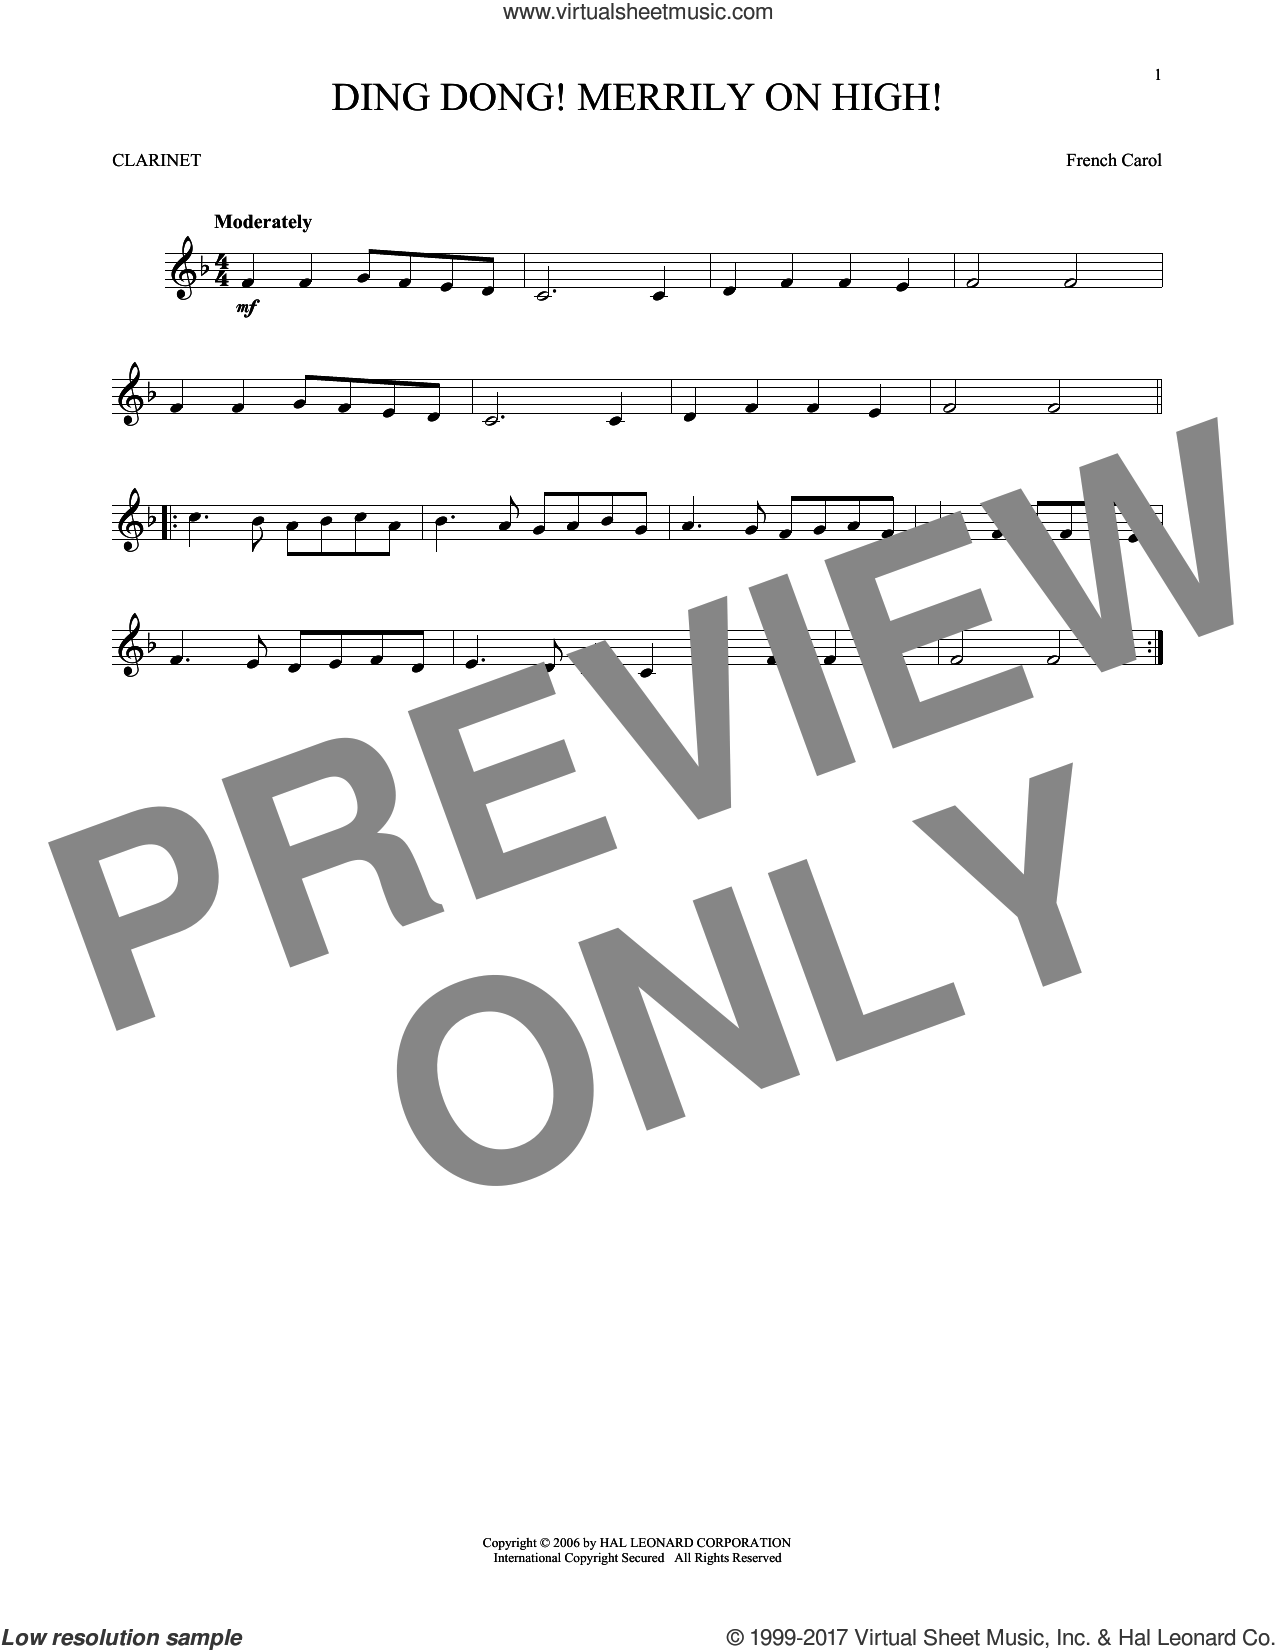 Ding Dong! Merrily On High! sheet music for clarinet solo, intermediate skill level